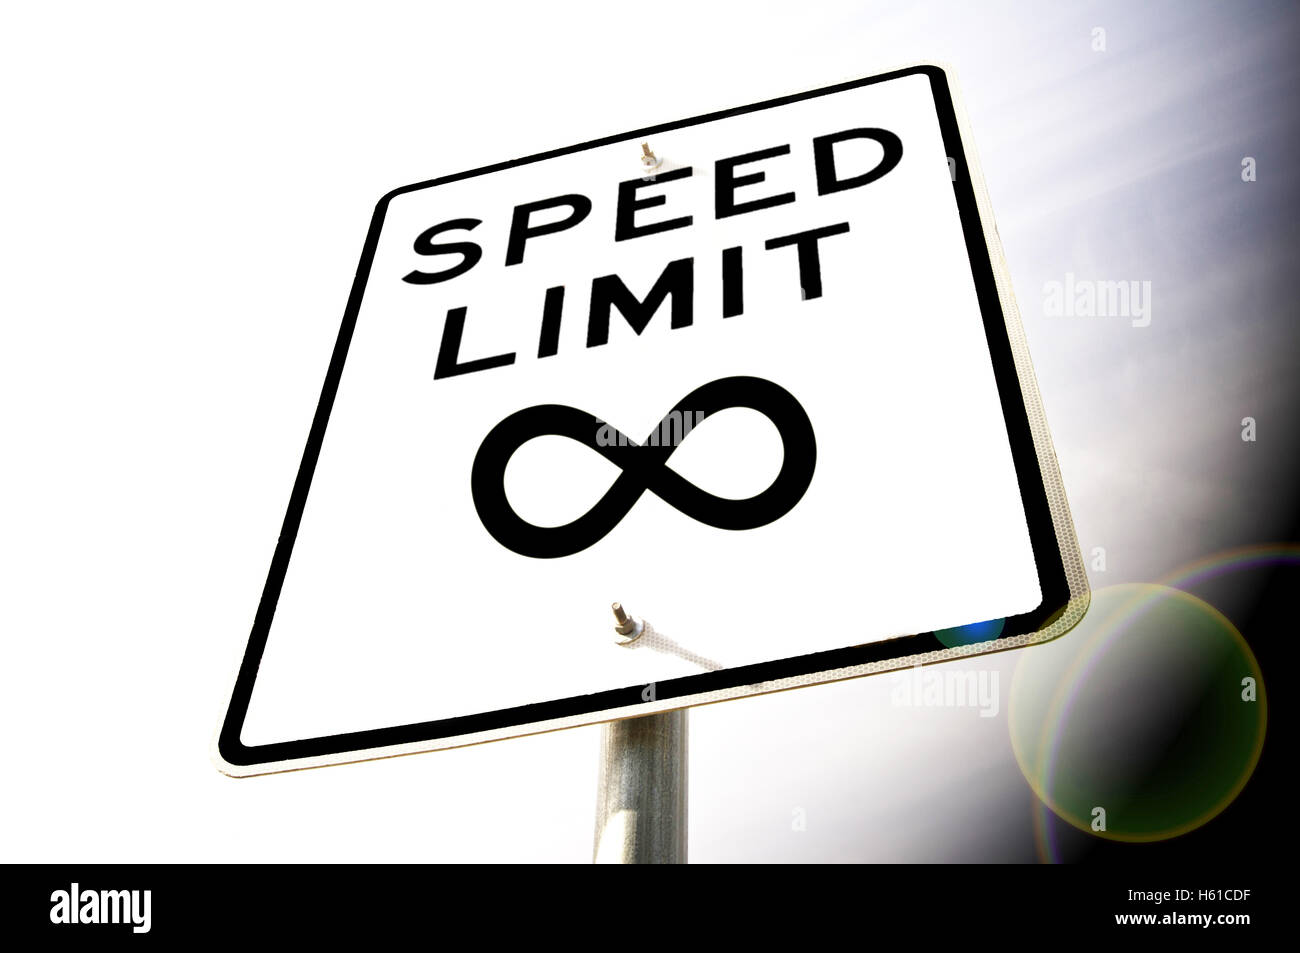 Speed Limit Infinity Sign - Stock Image